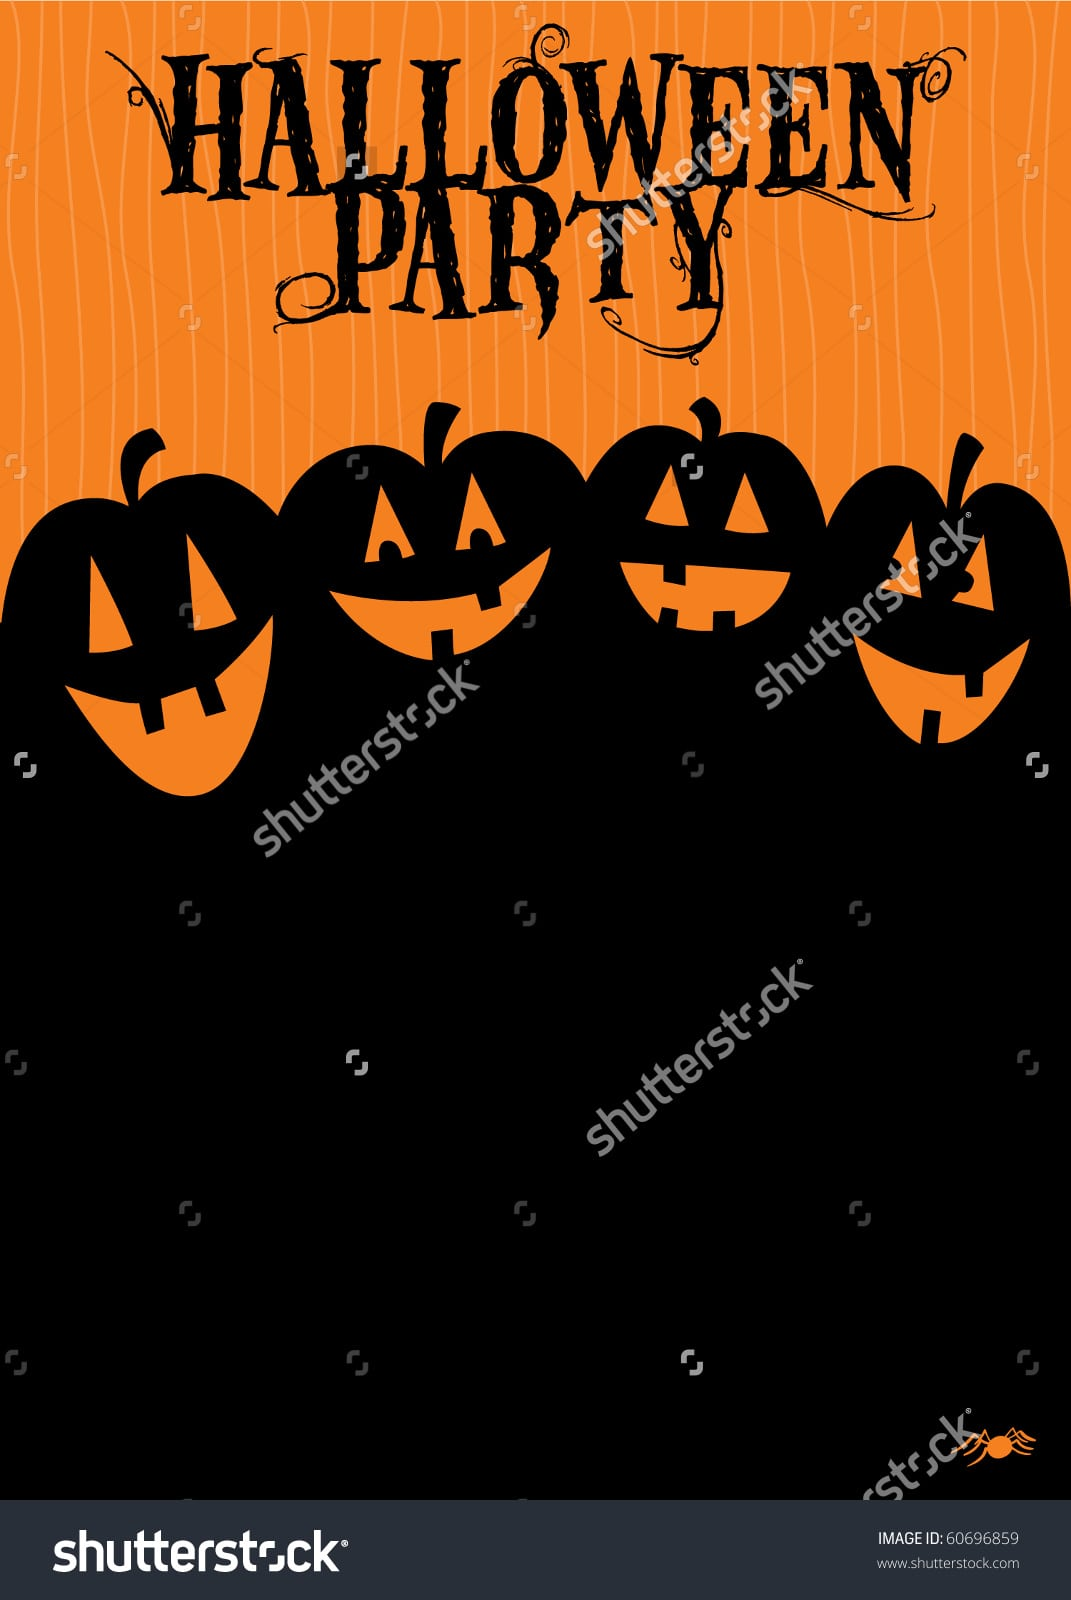 Halloween Party Invitation Stock Vector Illustration 60696859